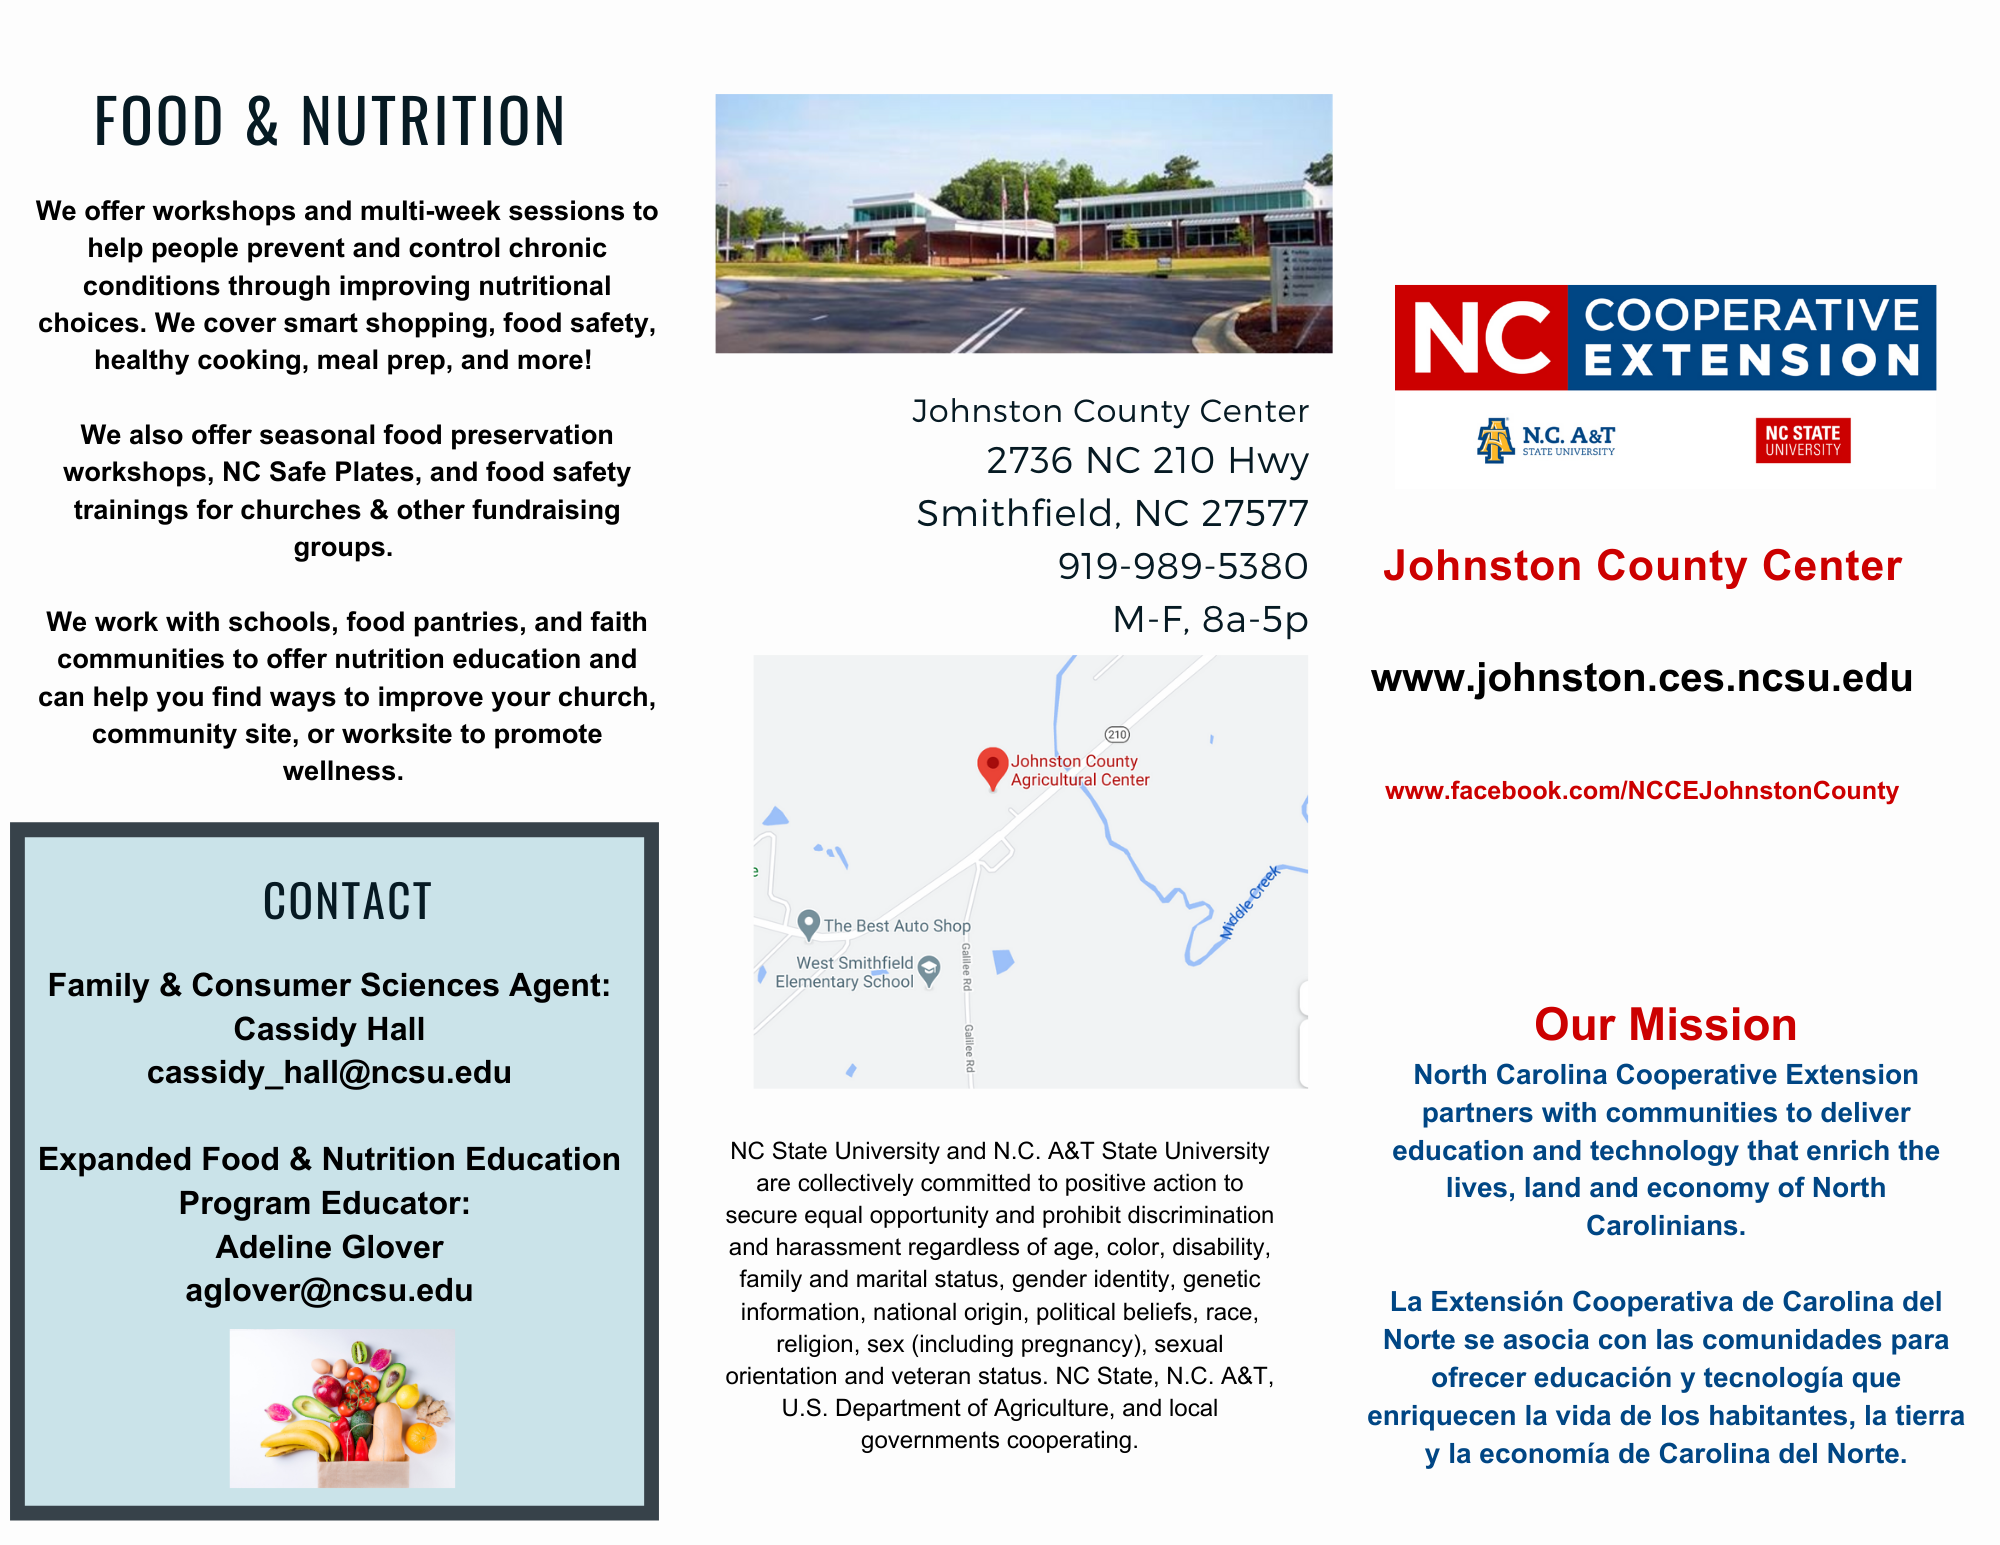 Food and Nutrition flyer image